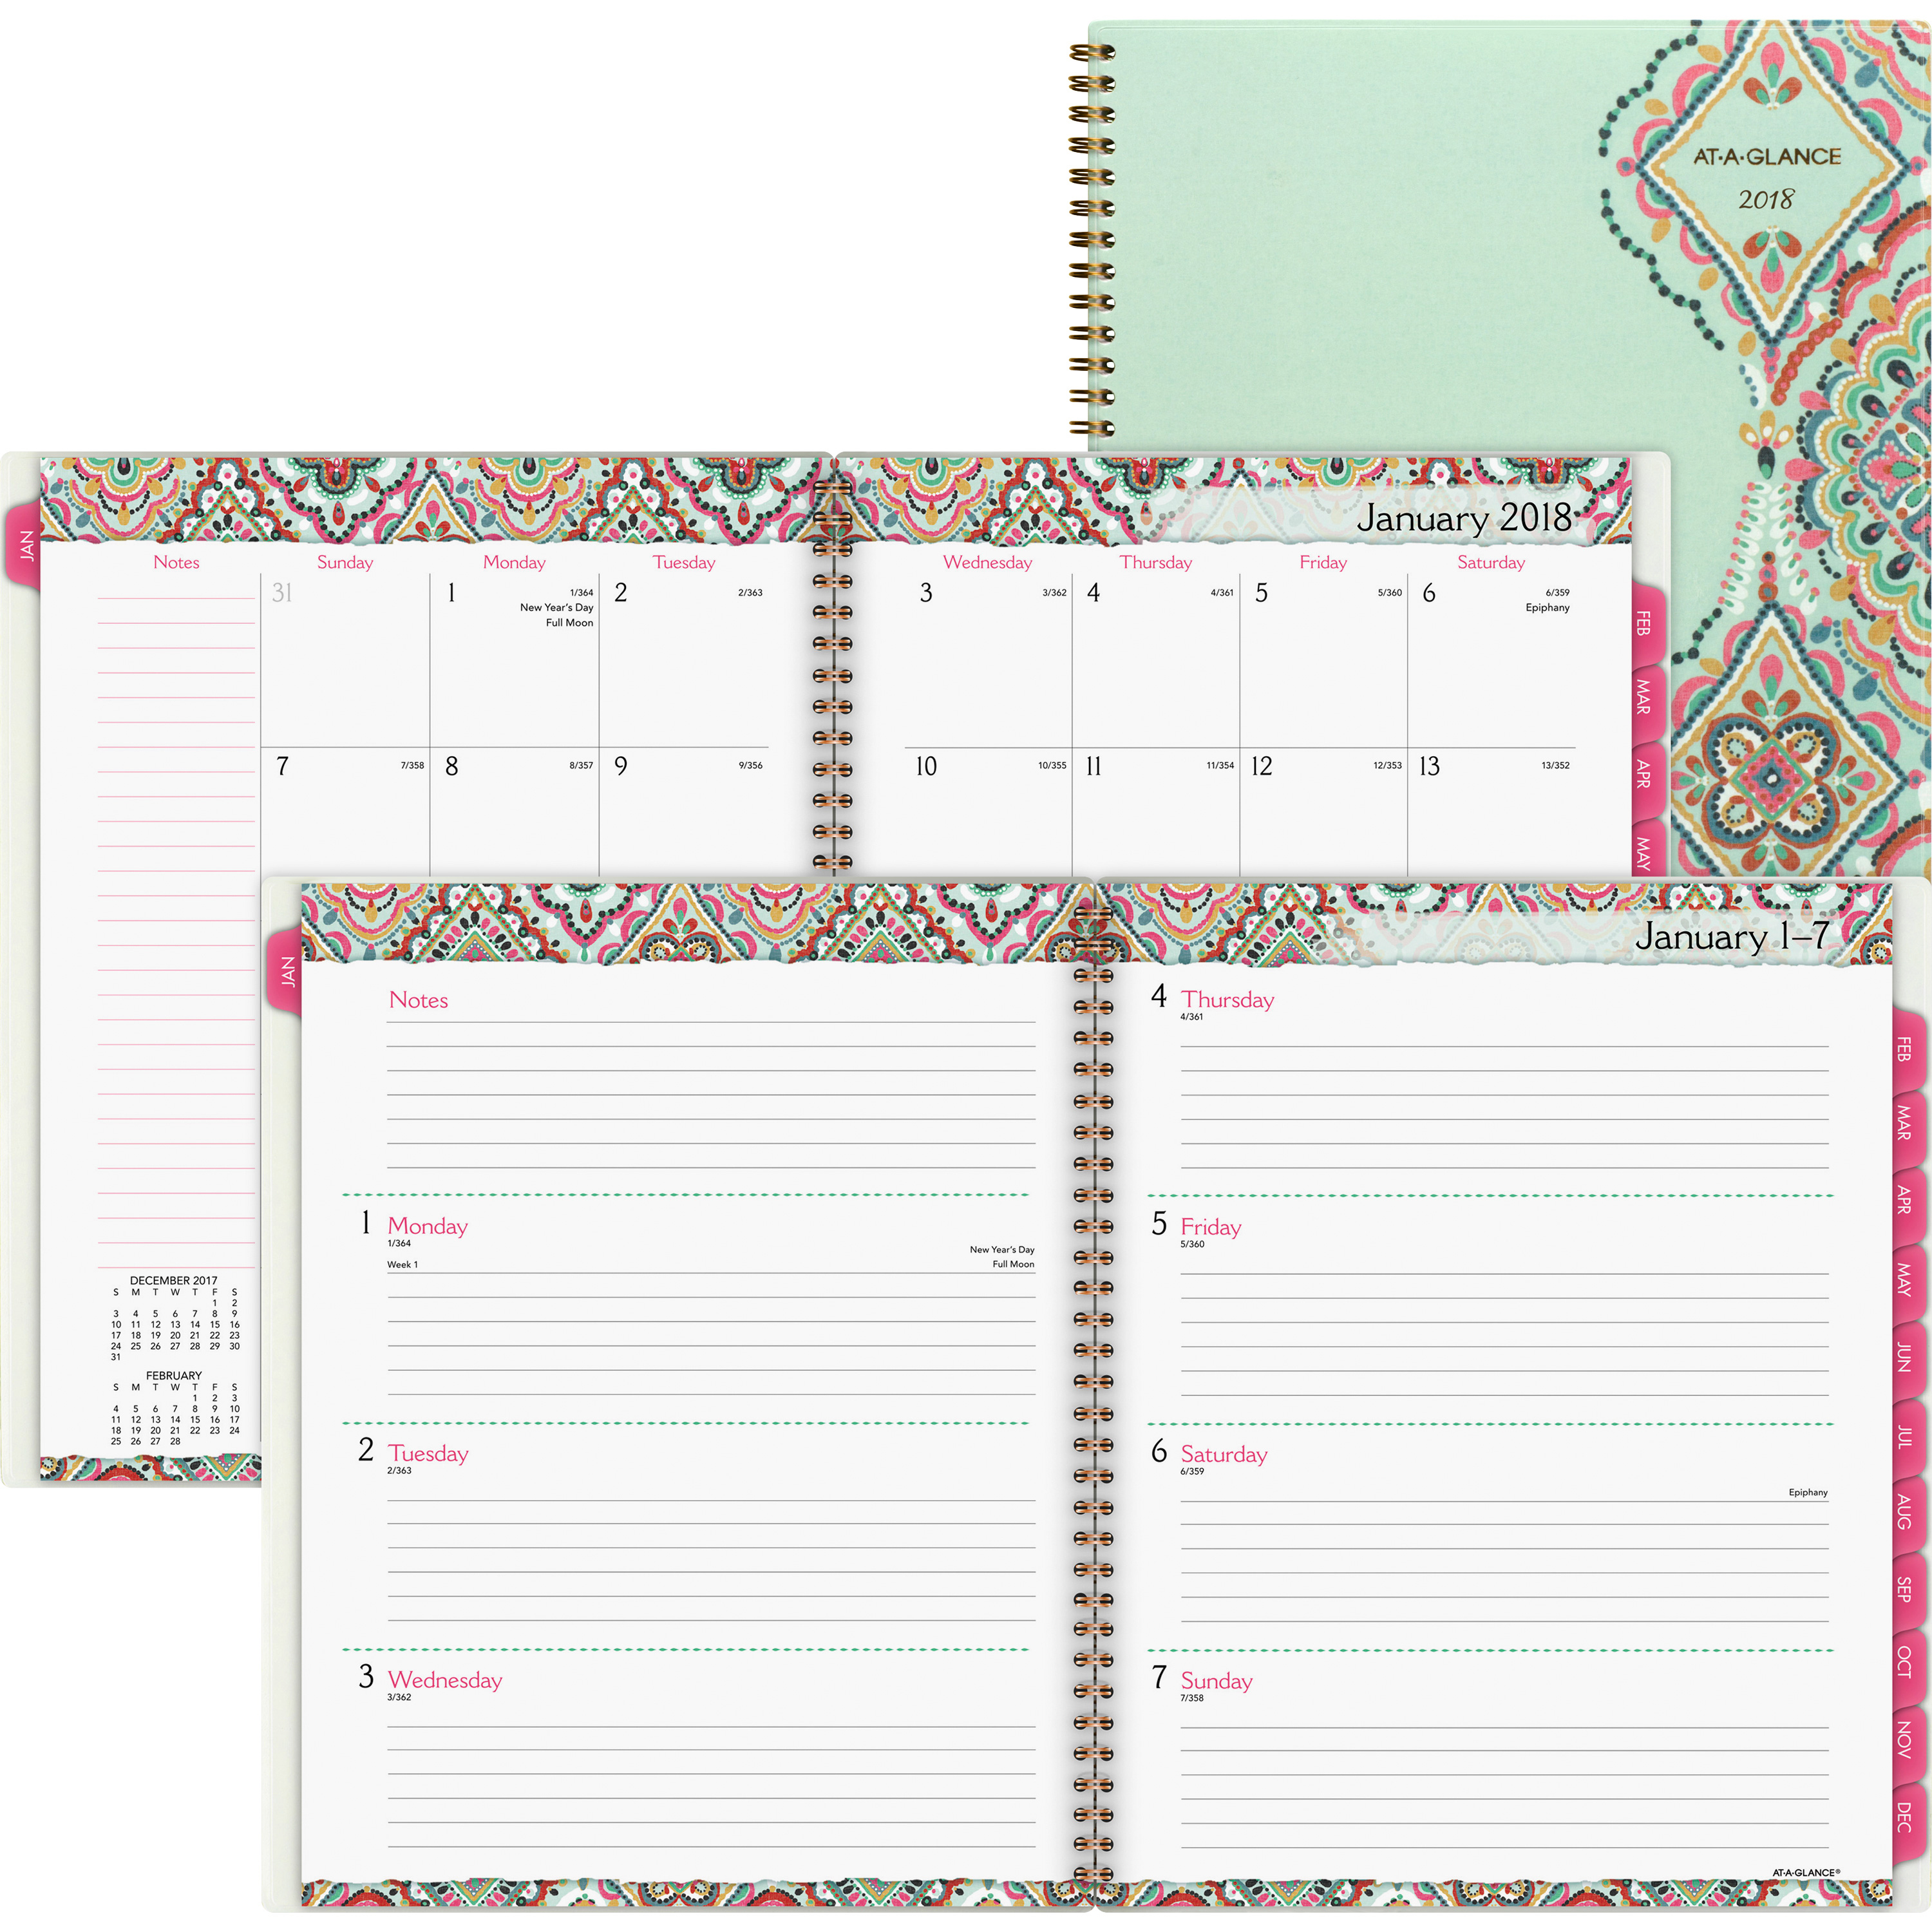 At-A-Glance AAG182905 8.5 x 11 in. Marrakesh Weekly-Monthly Planner